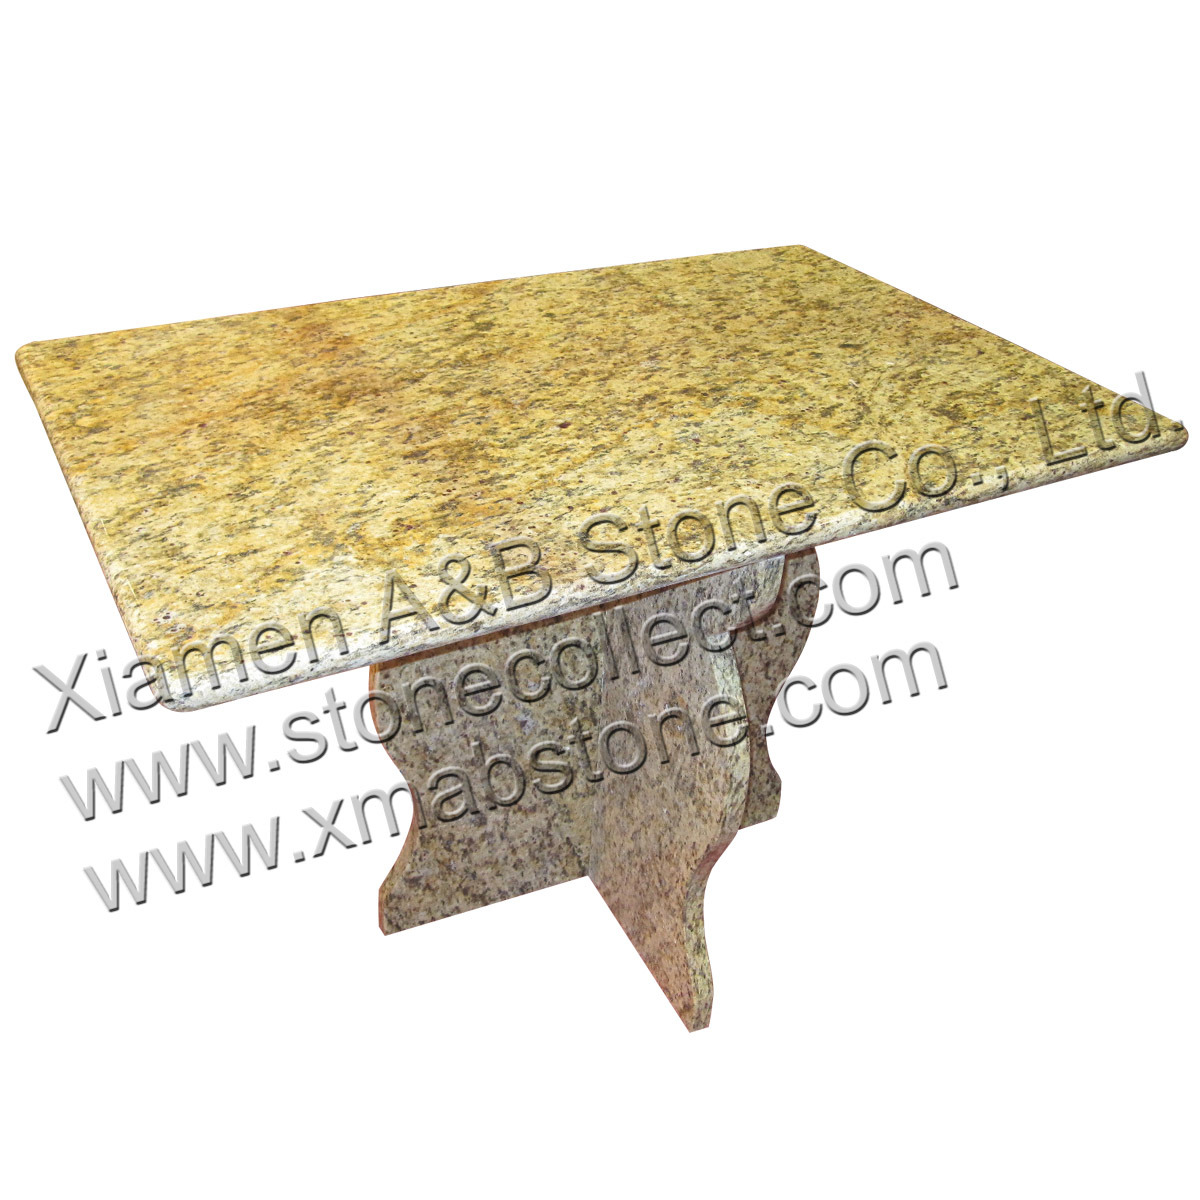 china yellow granite table top photos pictures made in. Black Bedroom Furniture Sets. Home Design Ideas